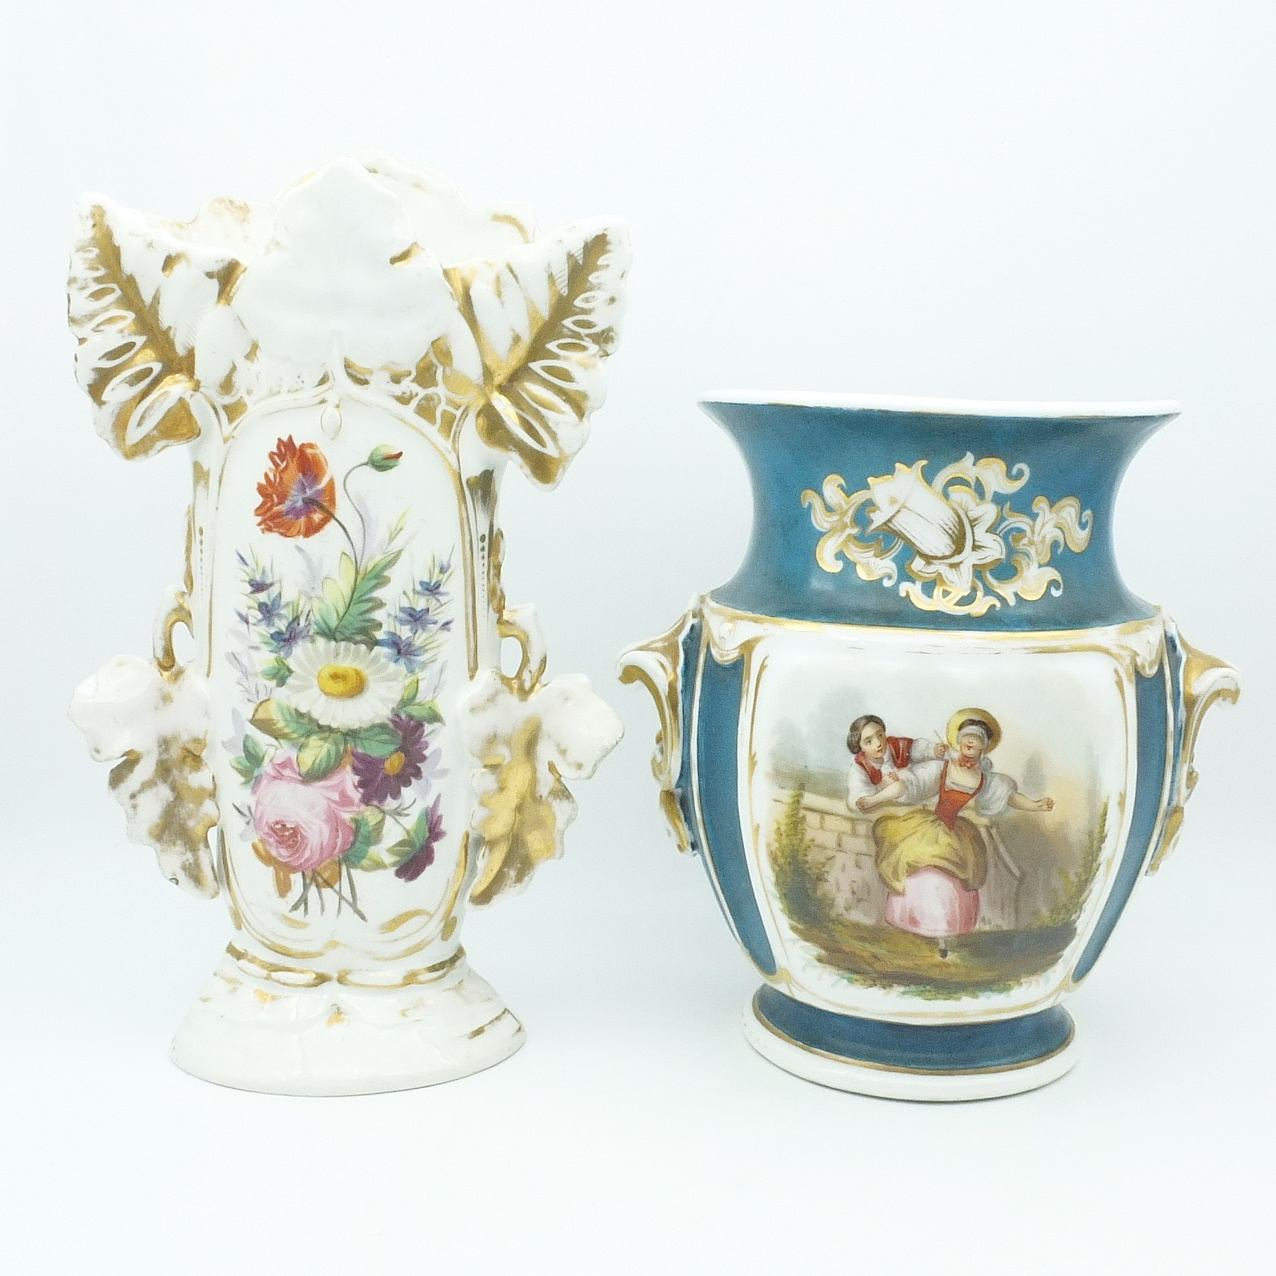 'Hand Painted and Gilded Continental Porcelain Urn and Mantle Vase'